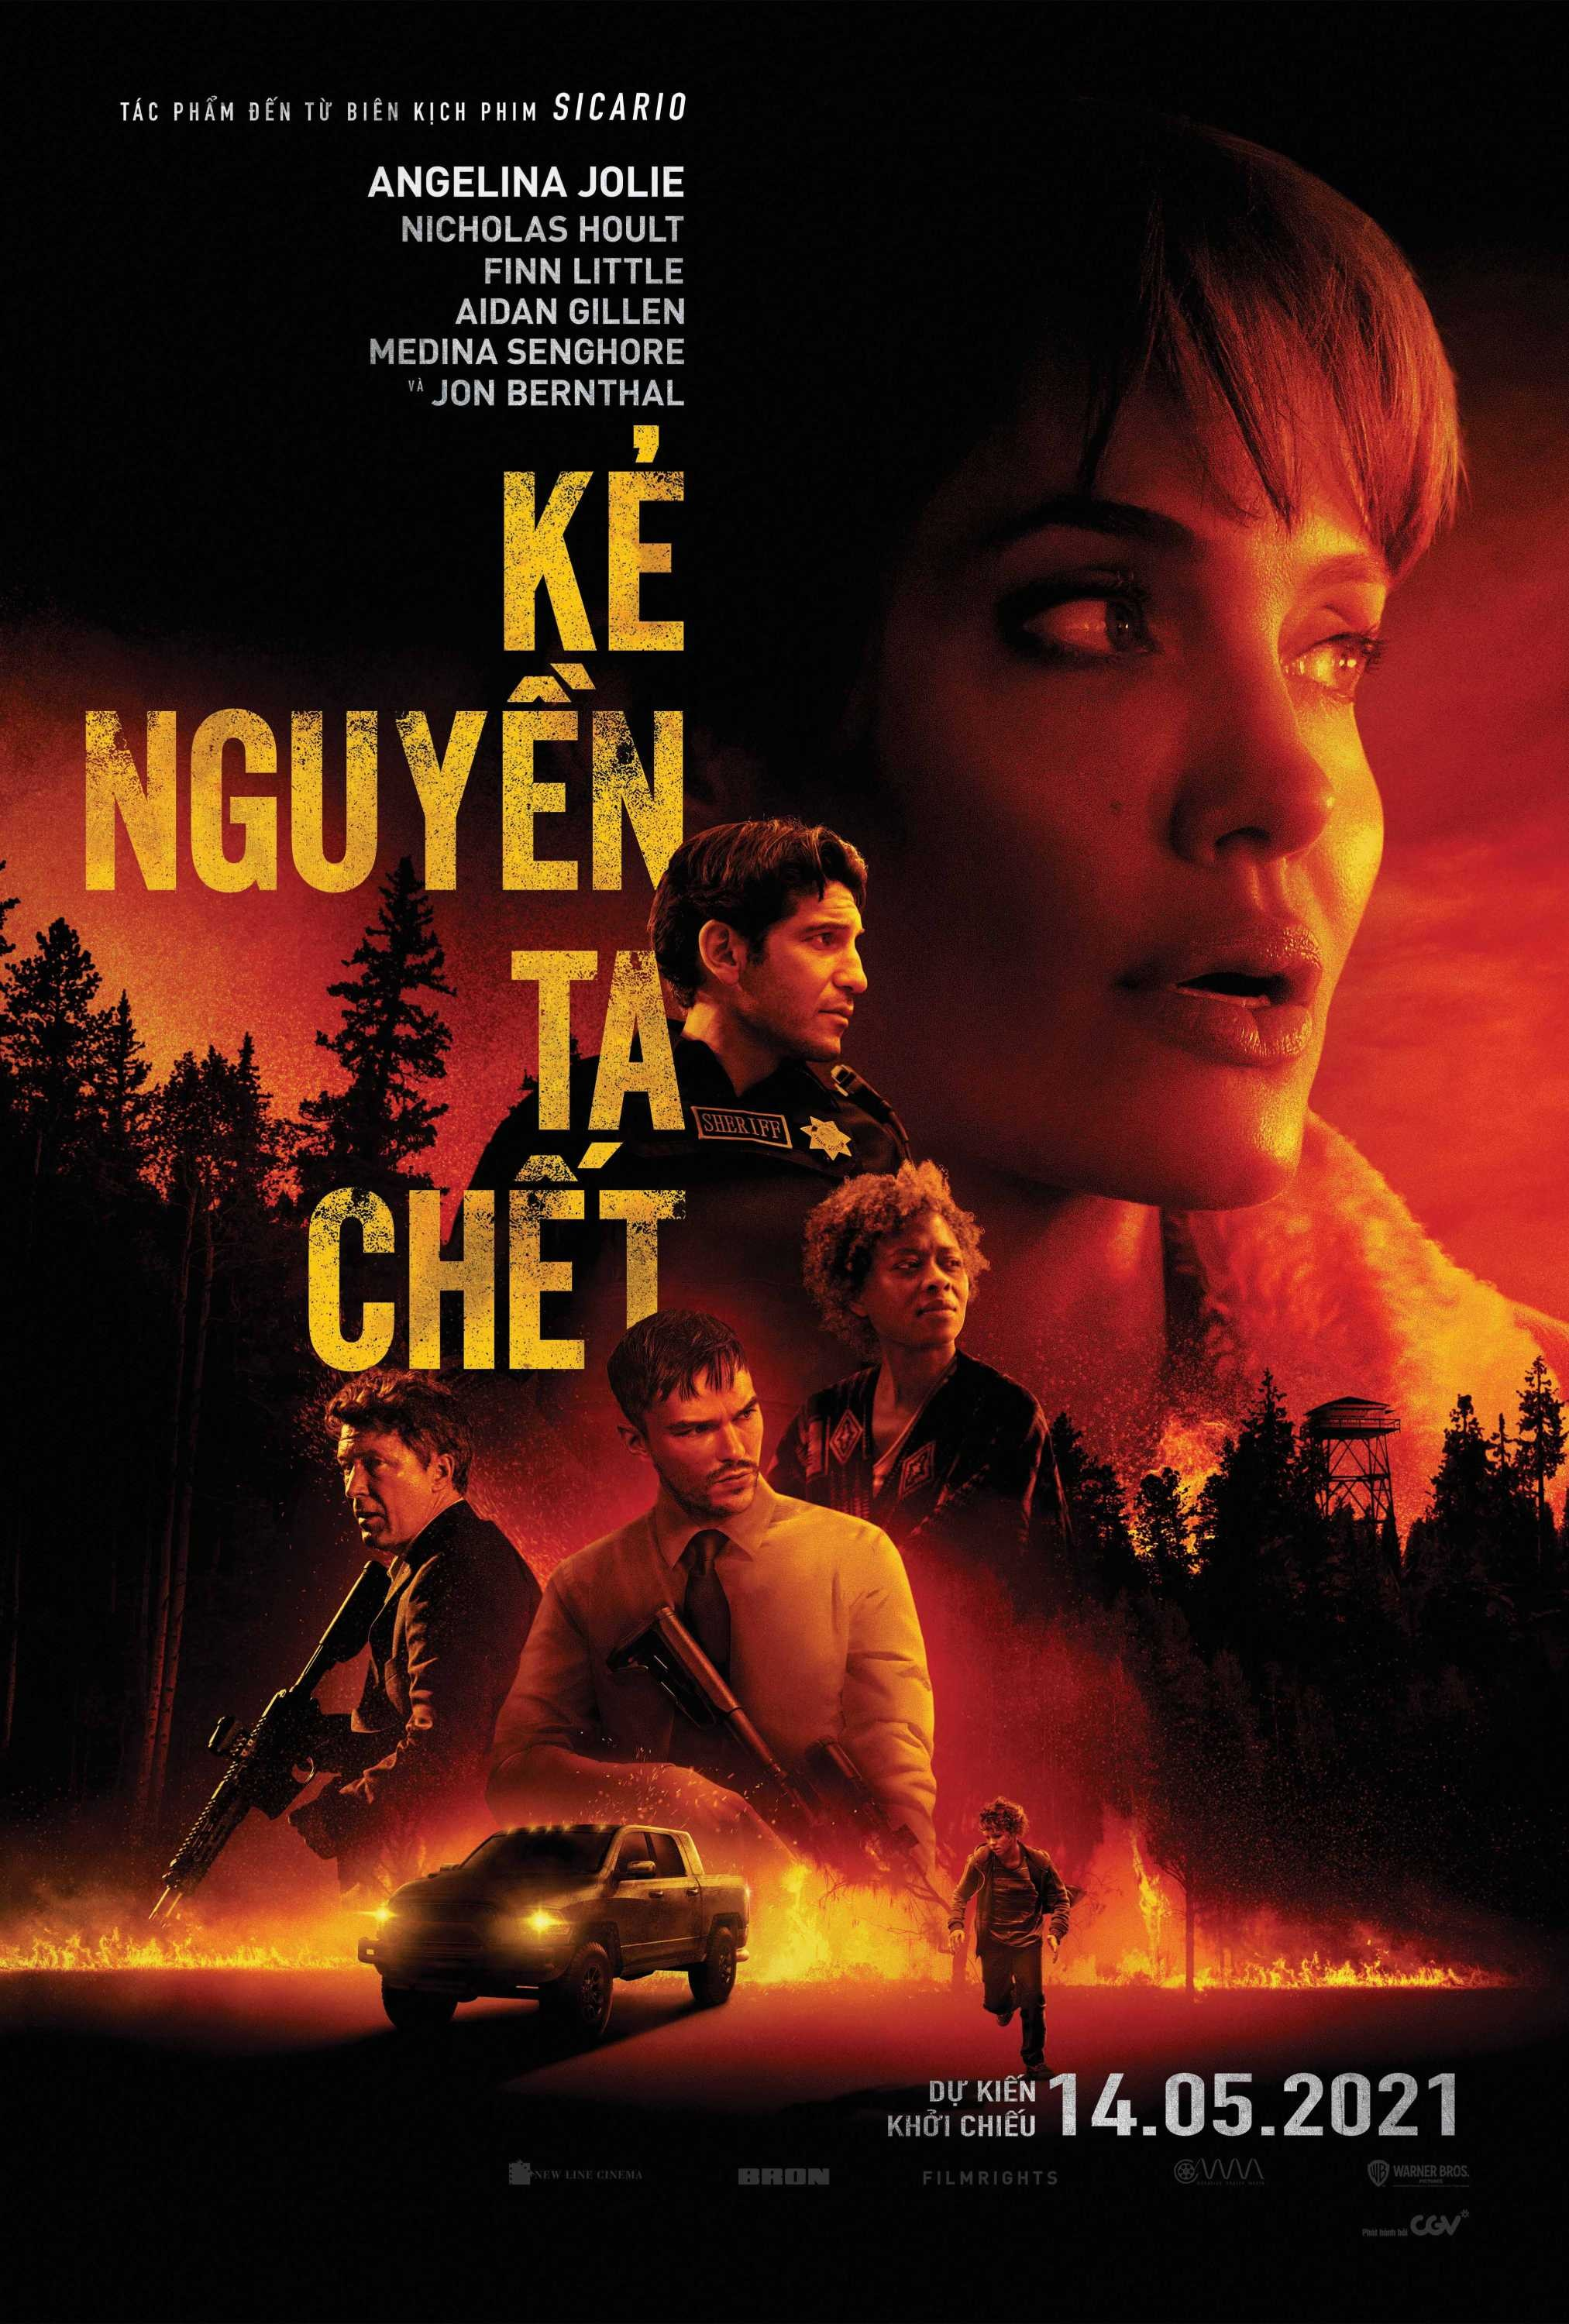 349 - Those Who Wish Me Dead 2021 - Kẻ Nguyền Ta Chết